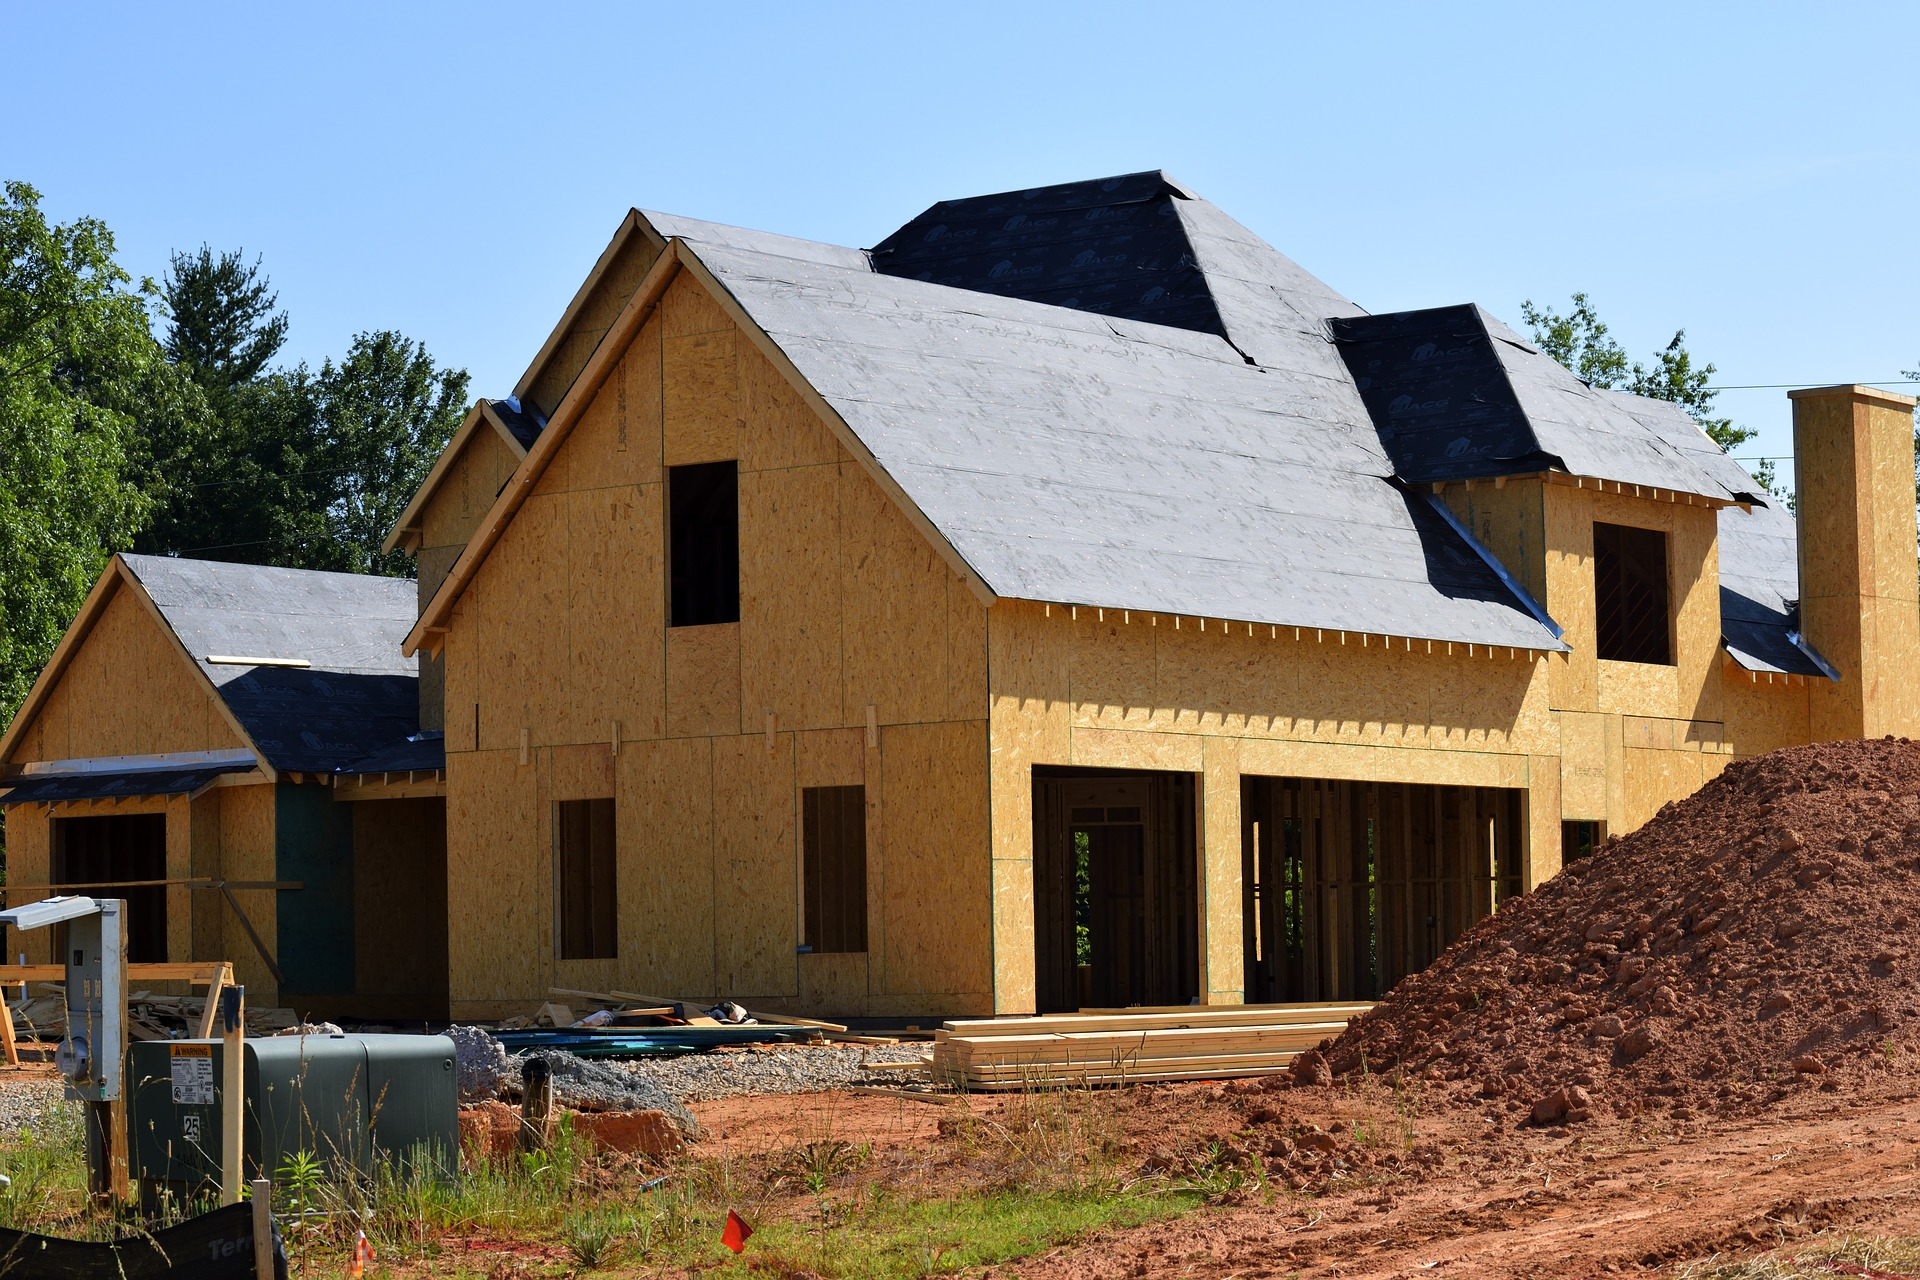 new-home-1664302_1920